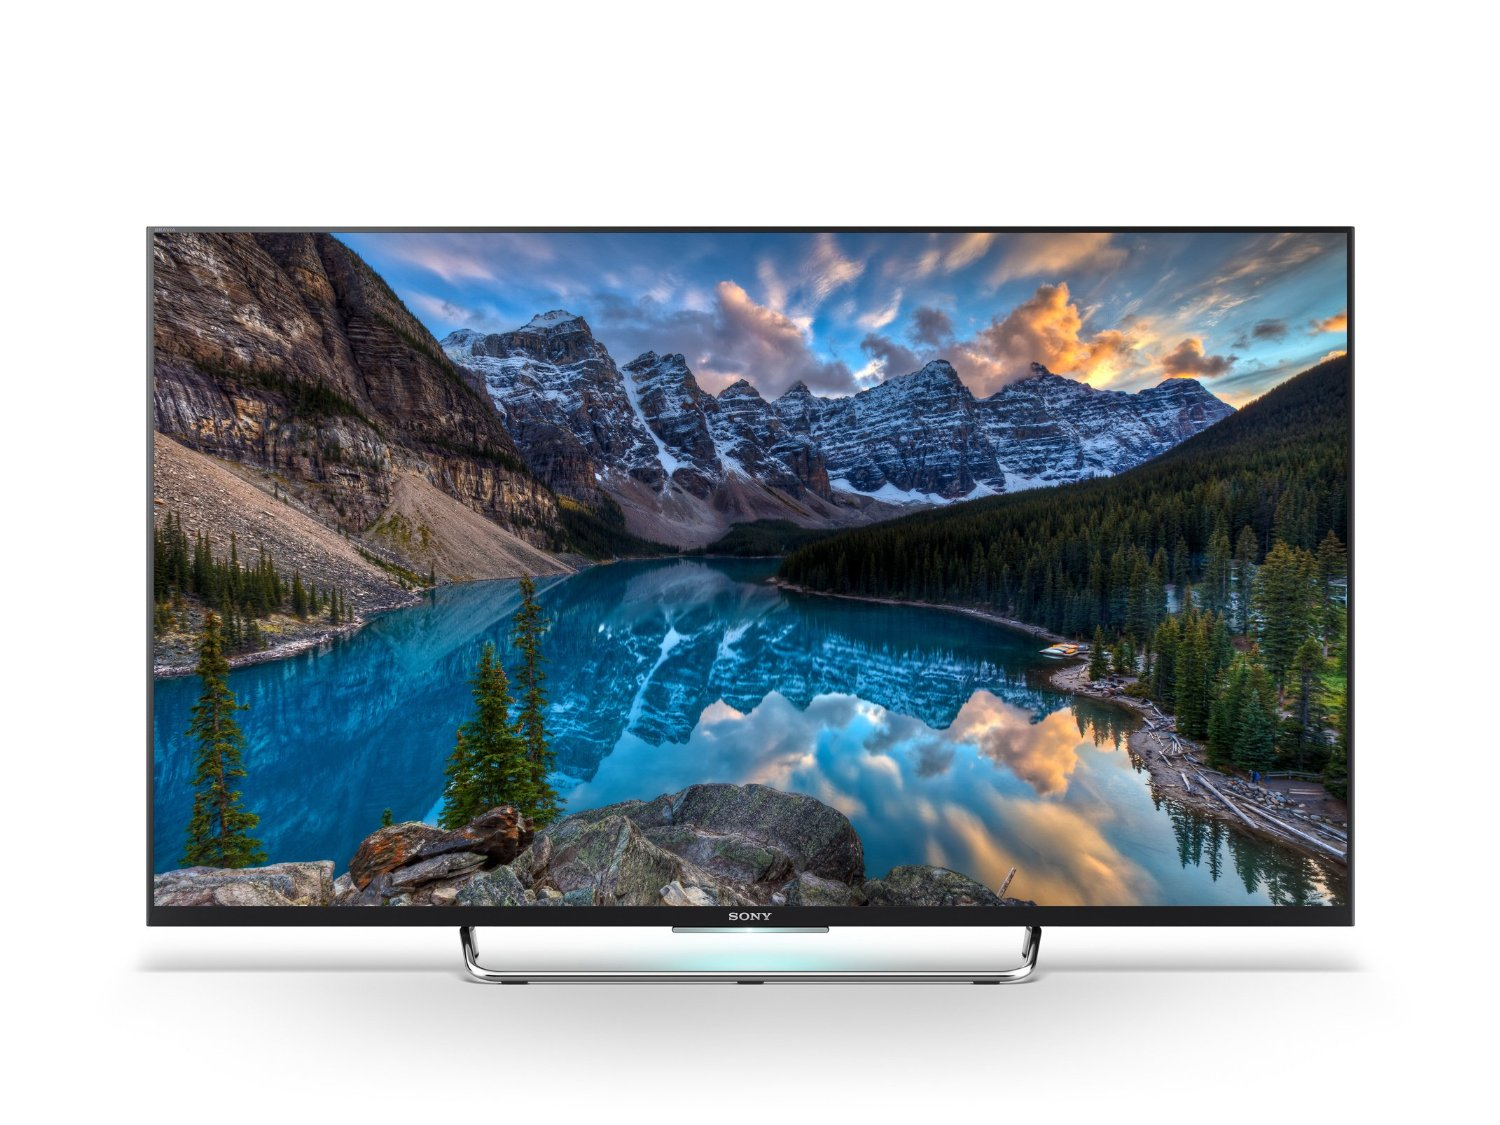 Get Quotations · Sony KDL50W800C 50-Inch 1080p 3D Smart LED TV (2015 Model) Cheap 50 Inch Tv, find Tv deals on line at Alibaba.com